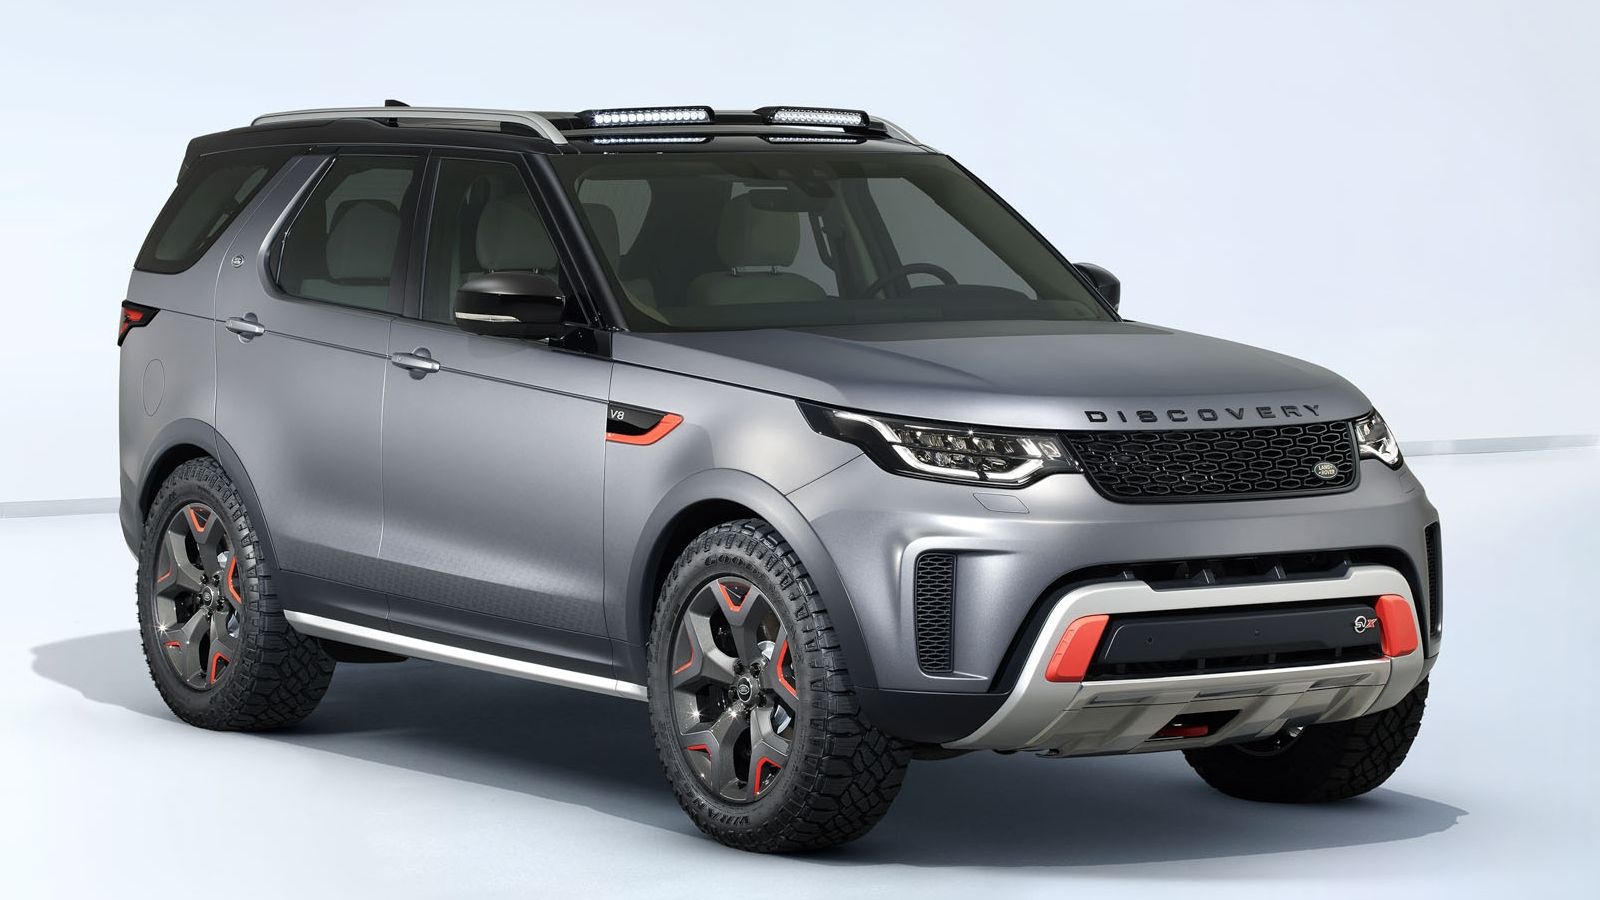 rover half discovery landrover land front foot runner products slimline roof rack mount cargo rail accessories ii